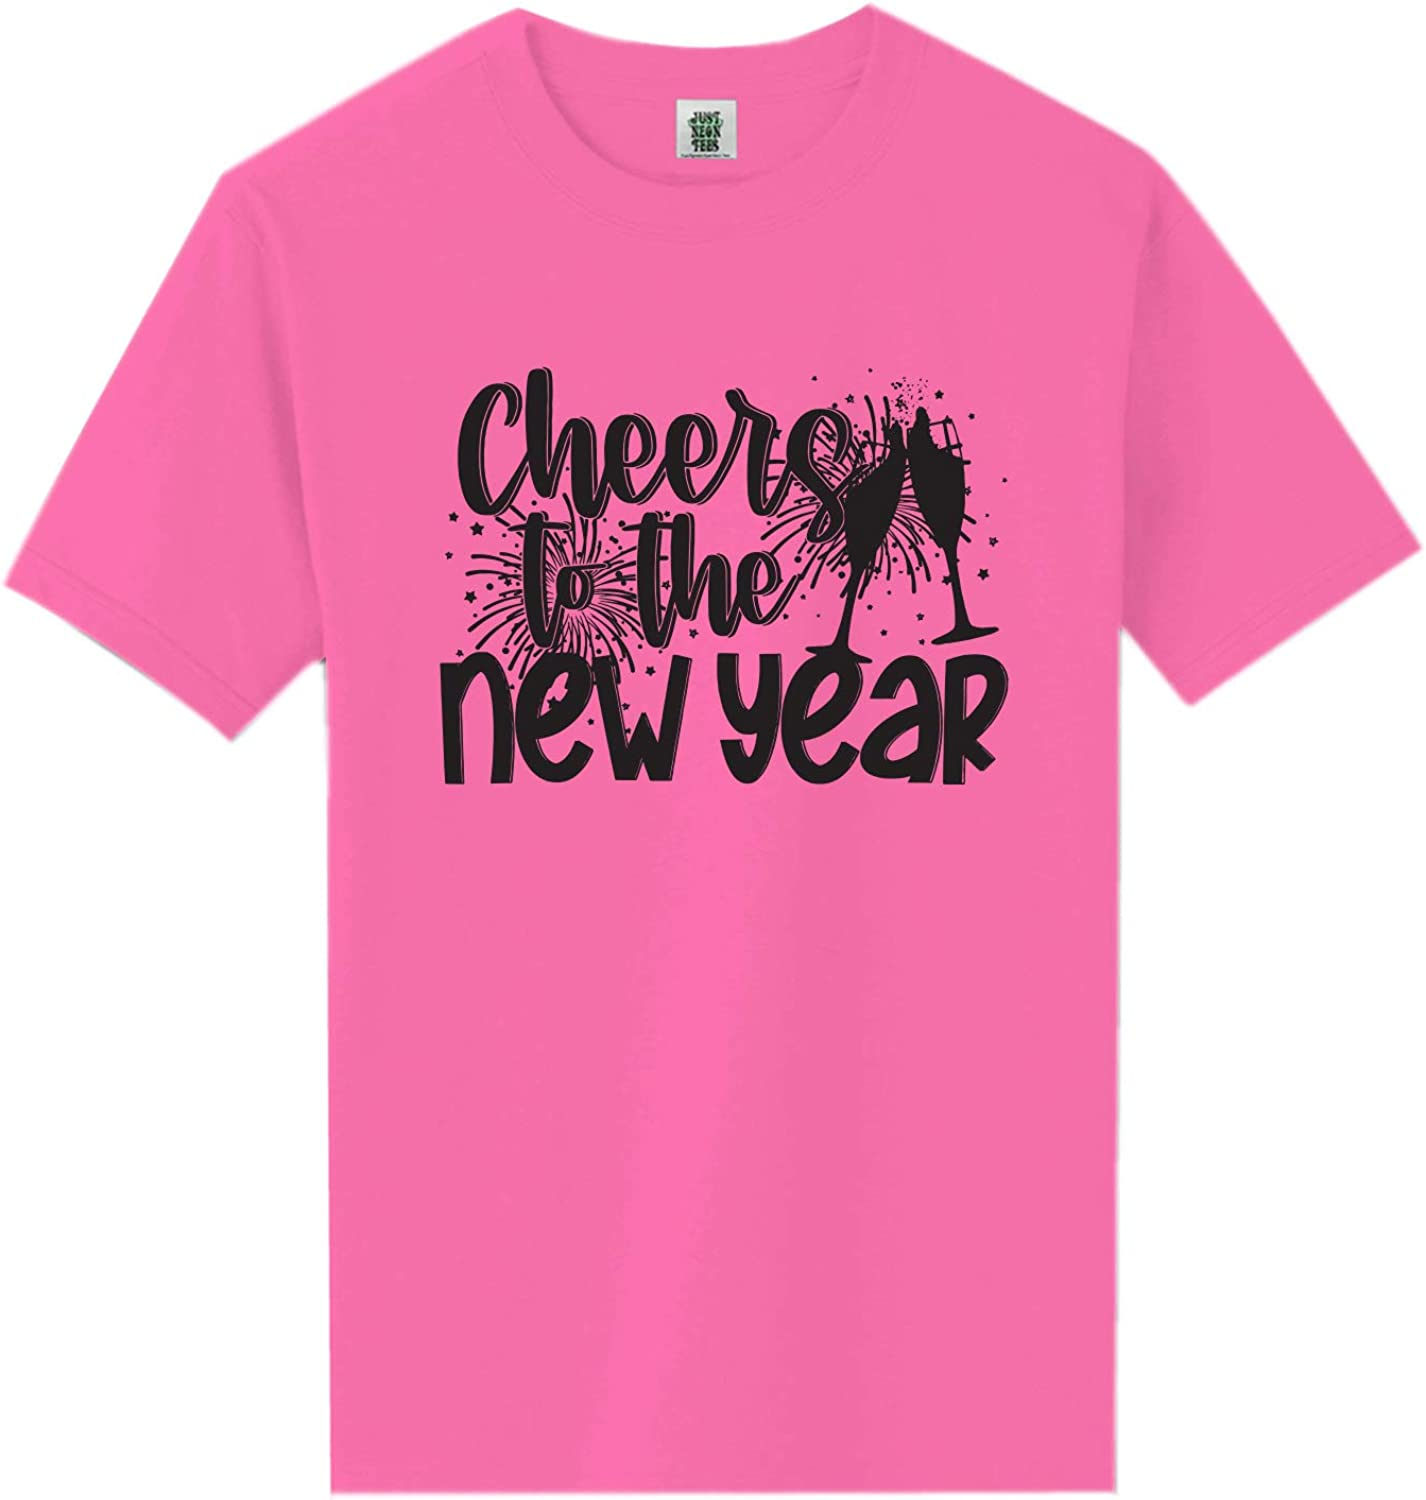 Cheers to The New Year Neon Pink Short Sleeve T-Shirt - XX-Large